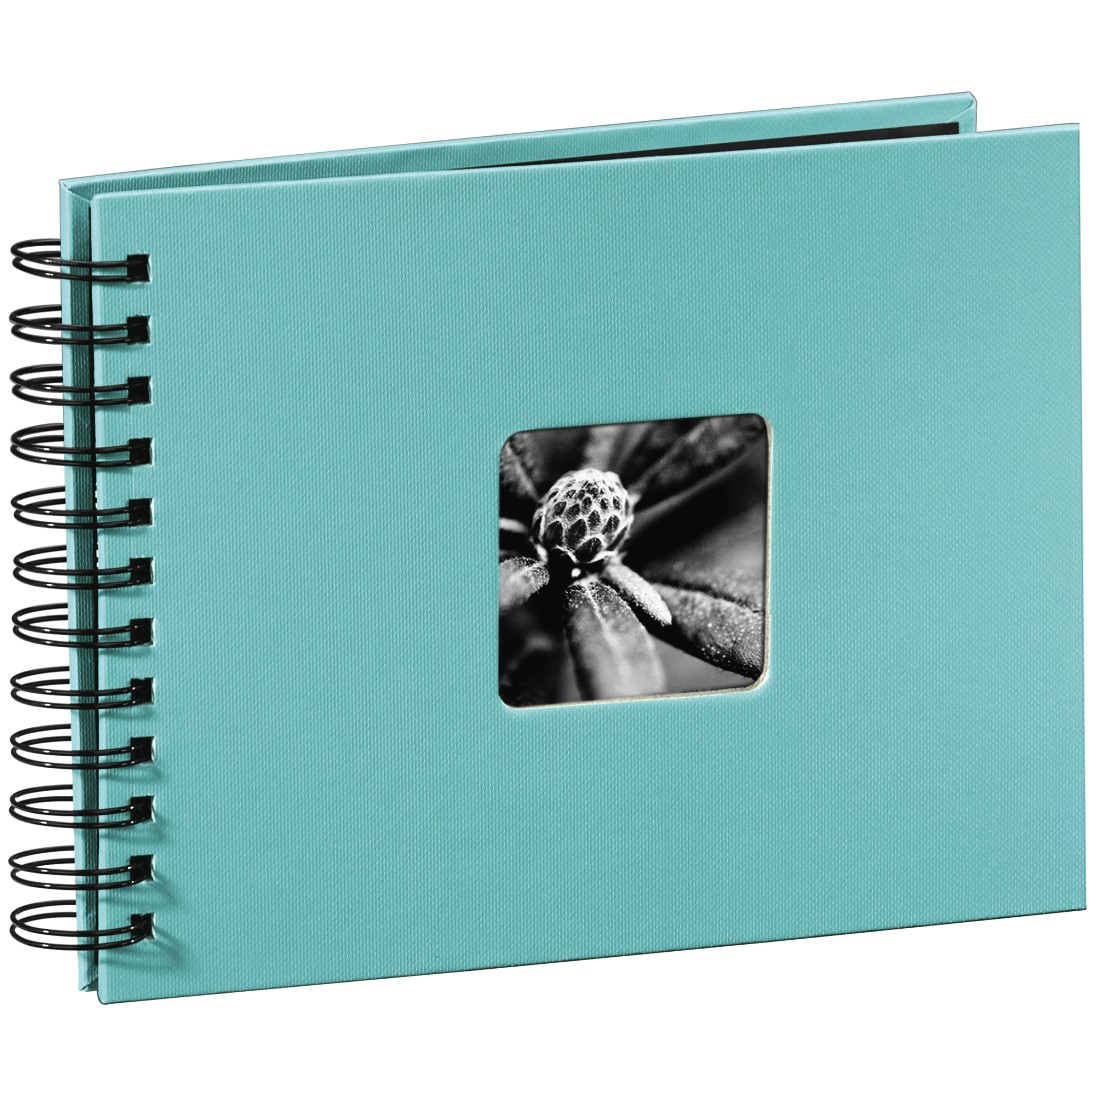 "abx High-Res Image - Hama, ""Fine Art"" Spiral Album, 24 x 17 cm, 50 Black Pages, turquoise"